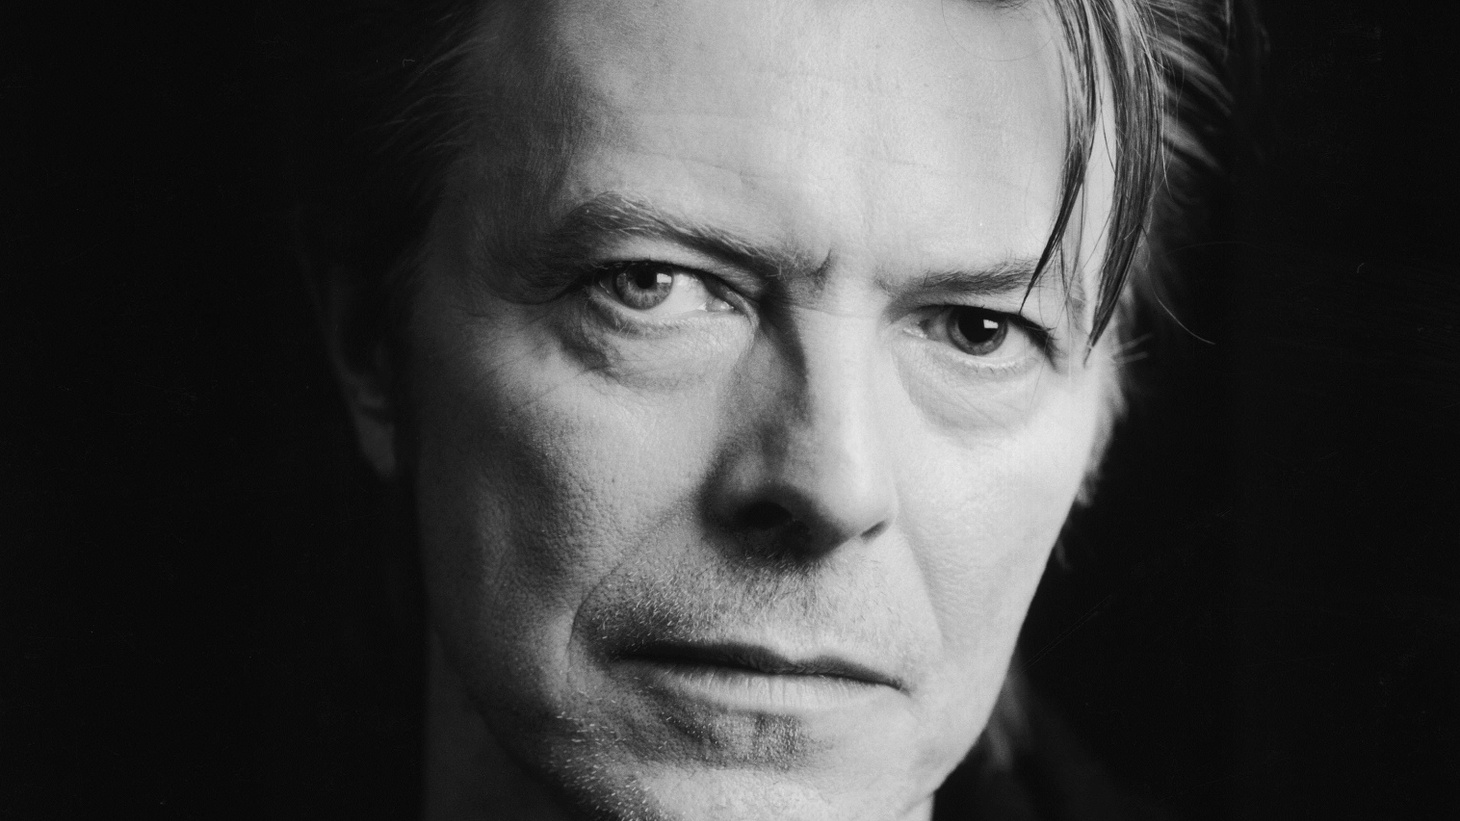 Living legend David Bowie joins us to discuss his album Earthling and much more.